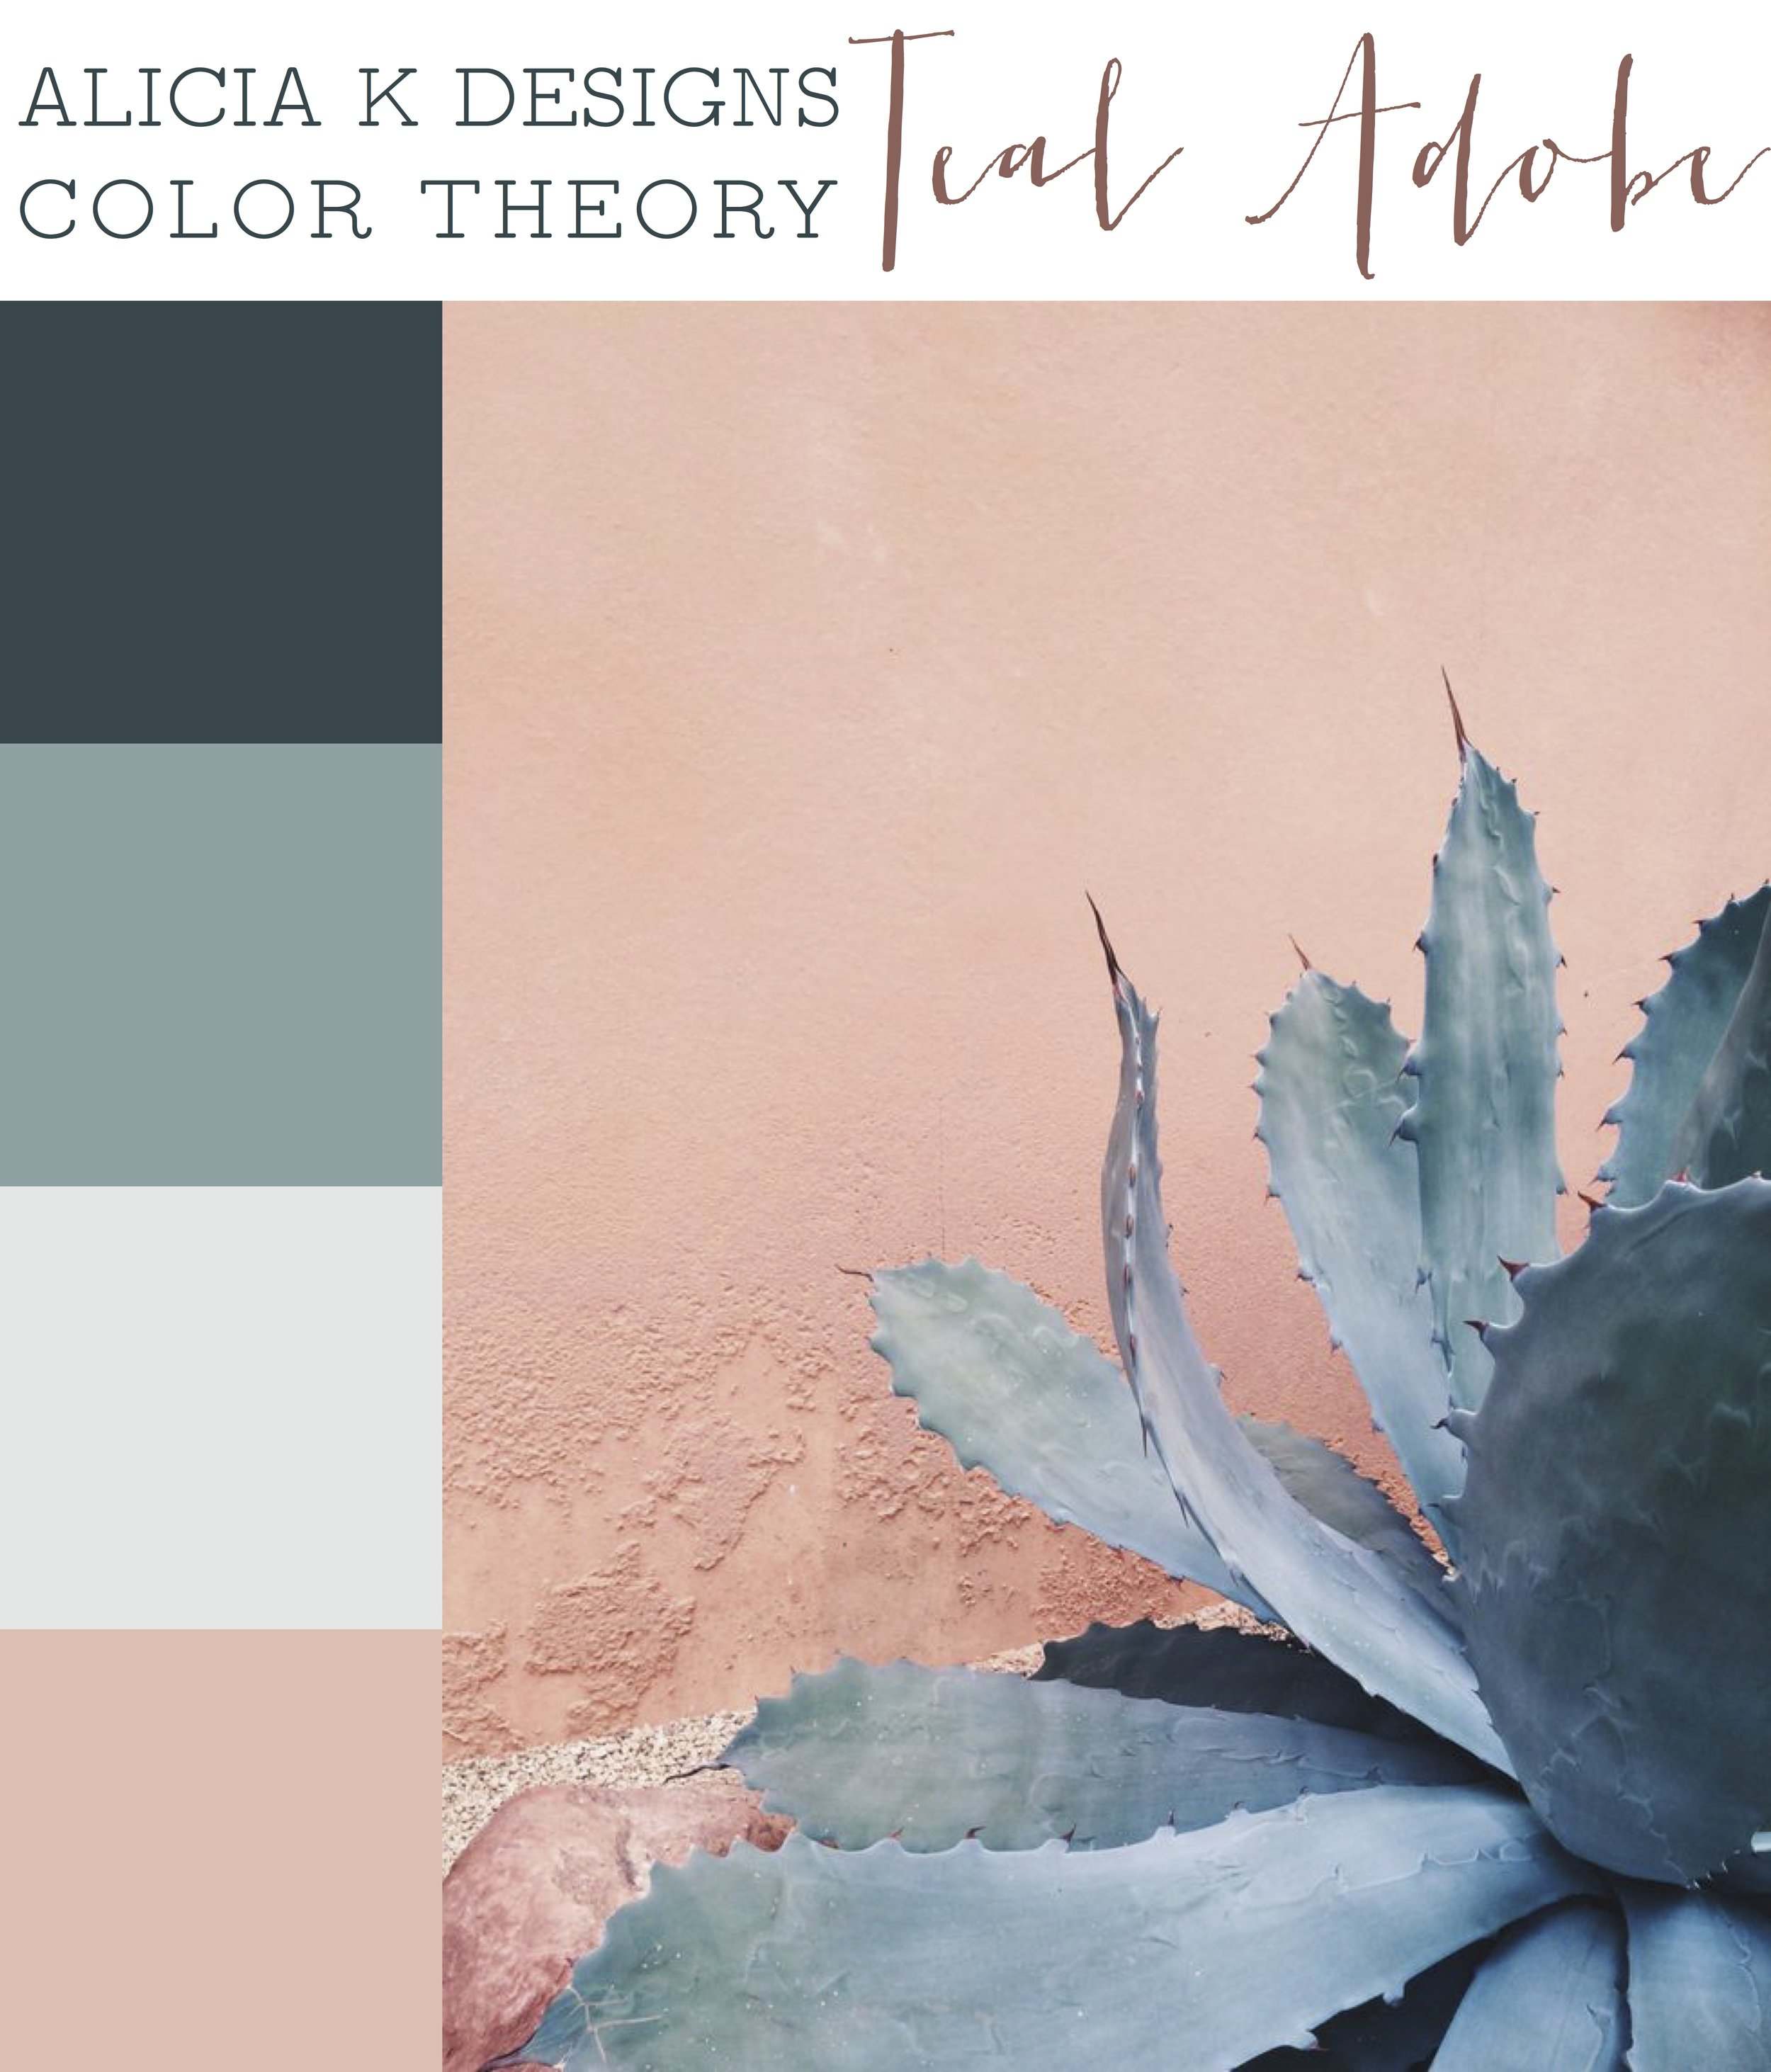 AKD Color Theory: Teal Adobe